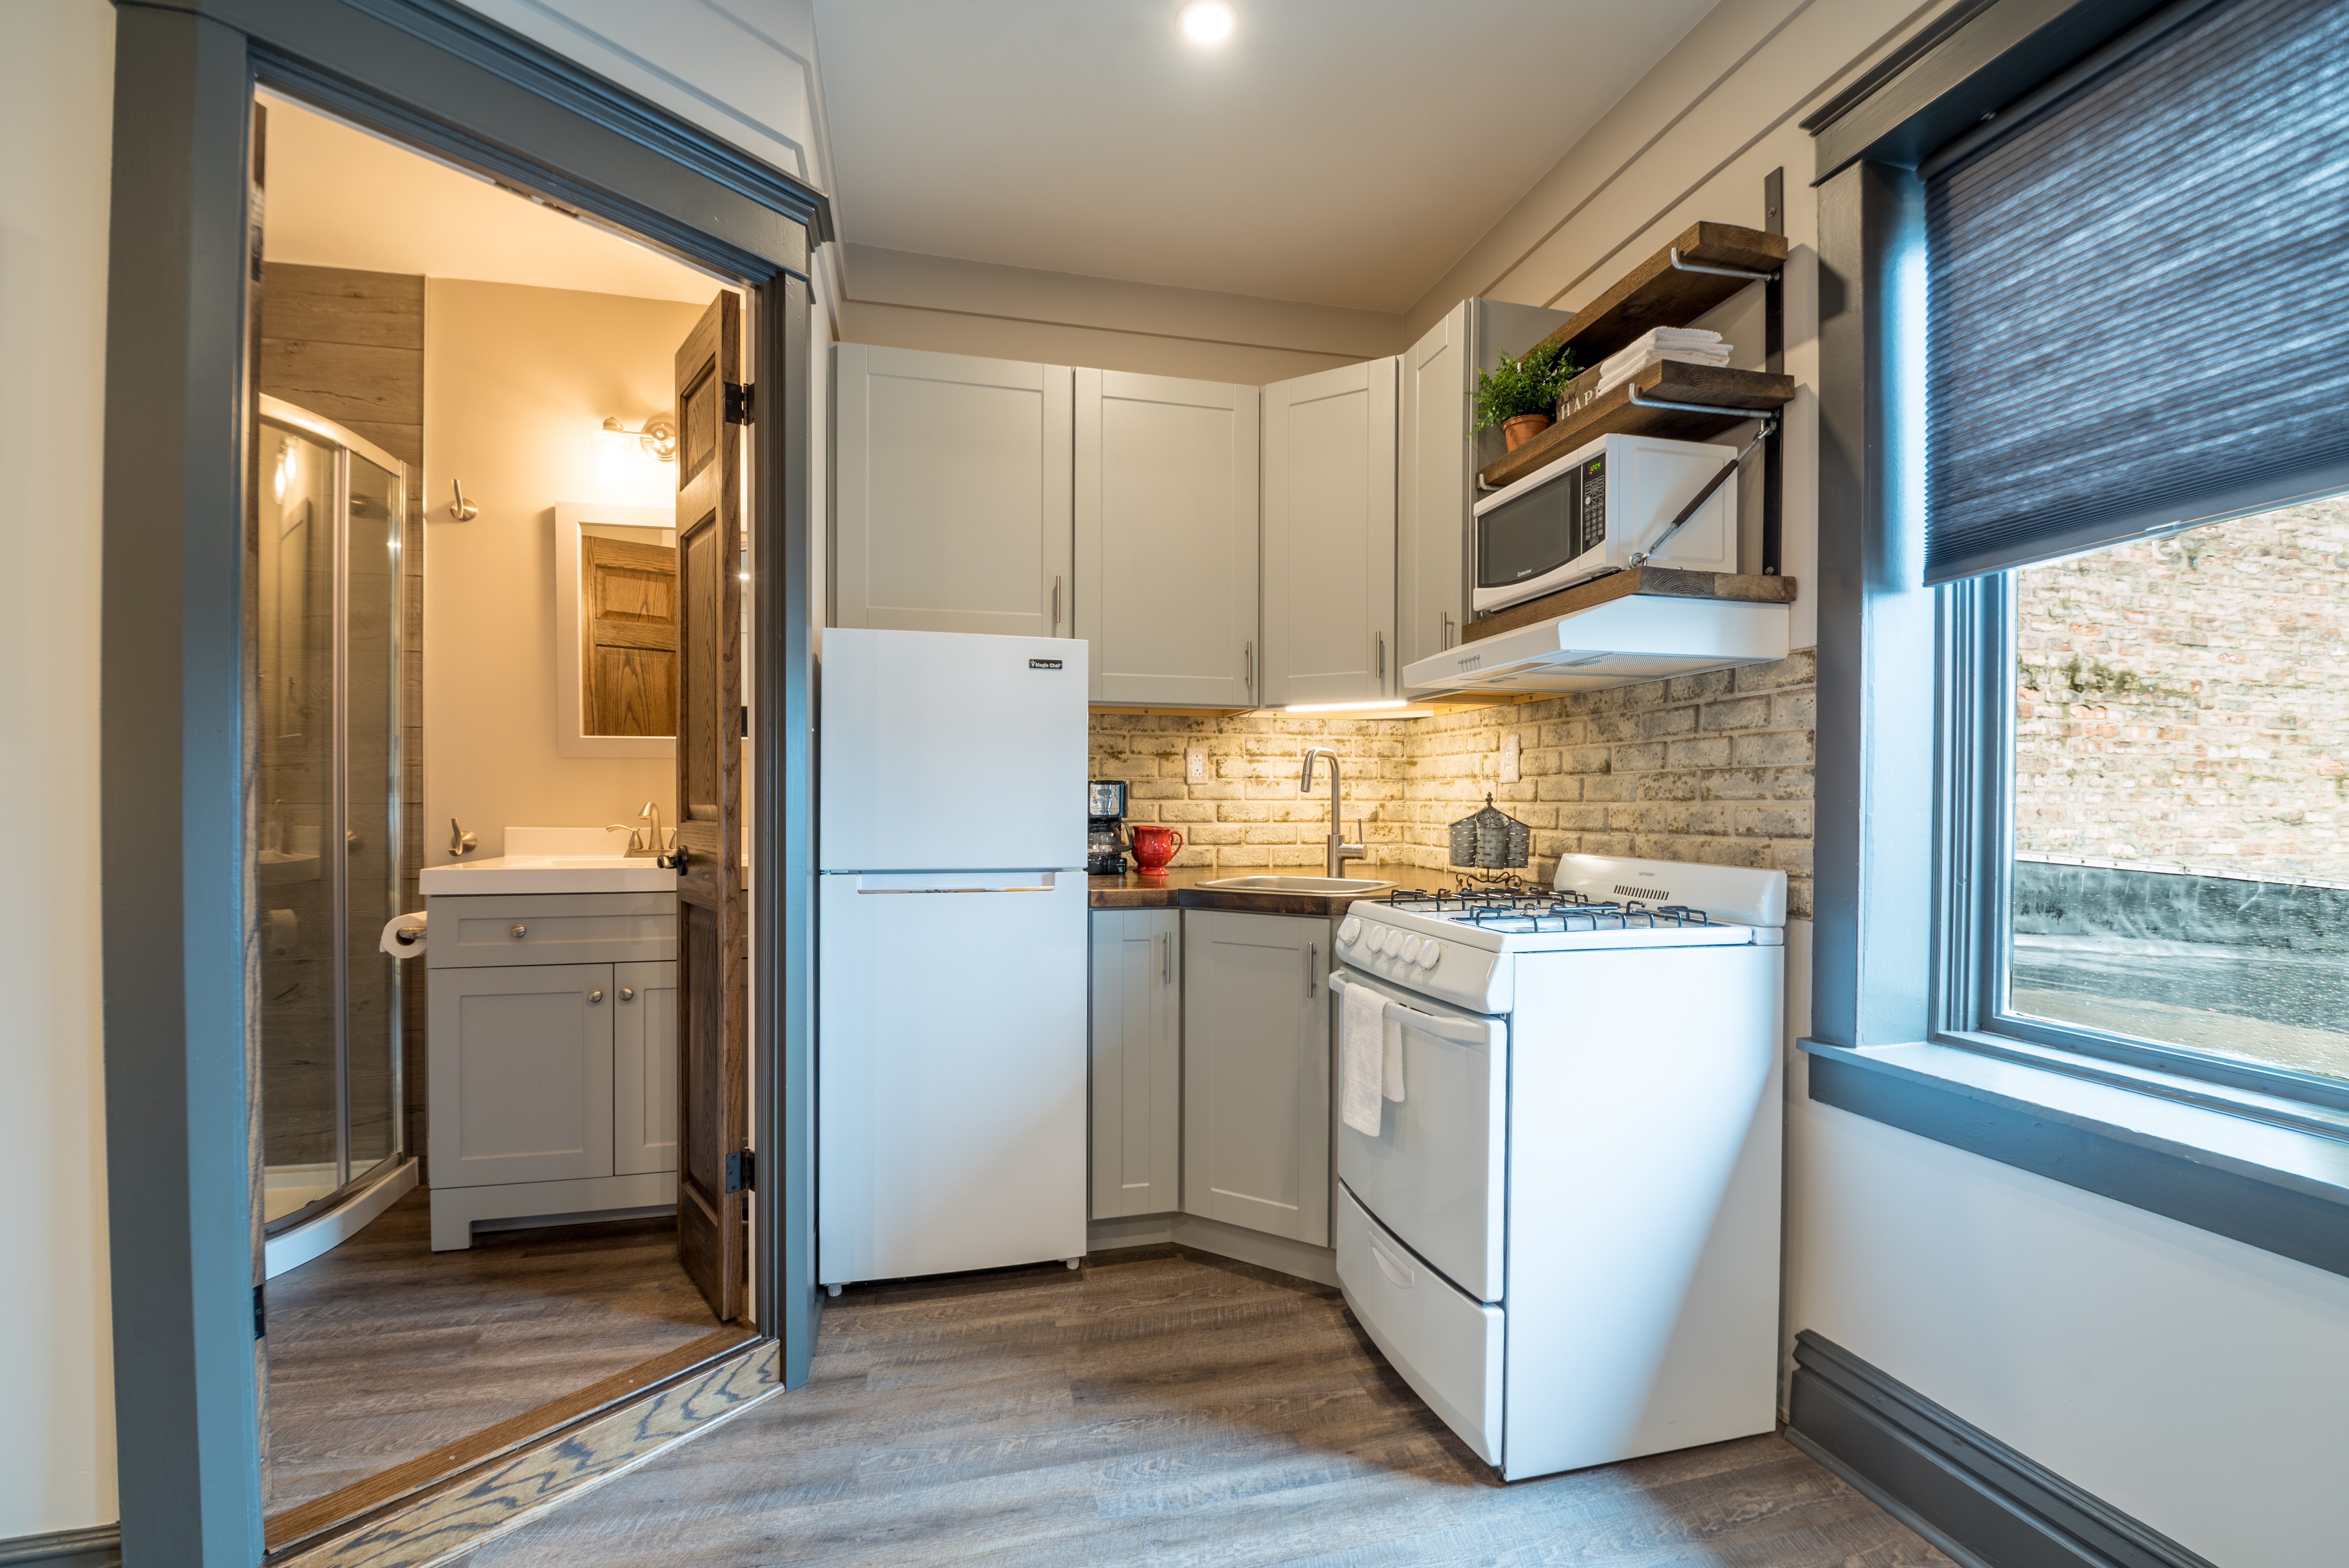 Boutique kitchen with apartment sized refrigerator/freezer, oven, microwave, coffee maker and sink